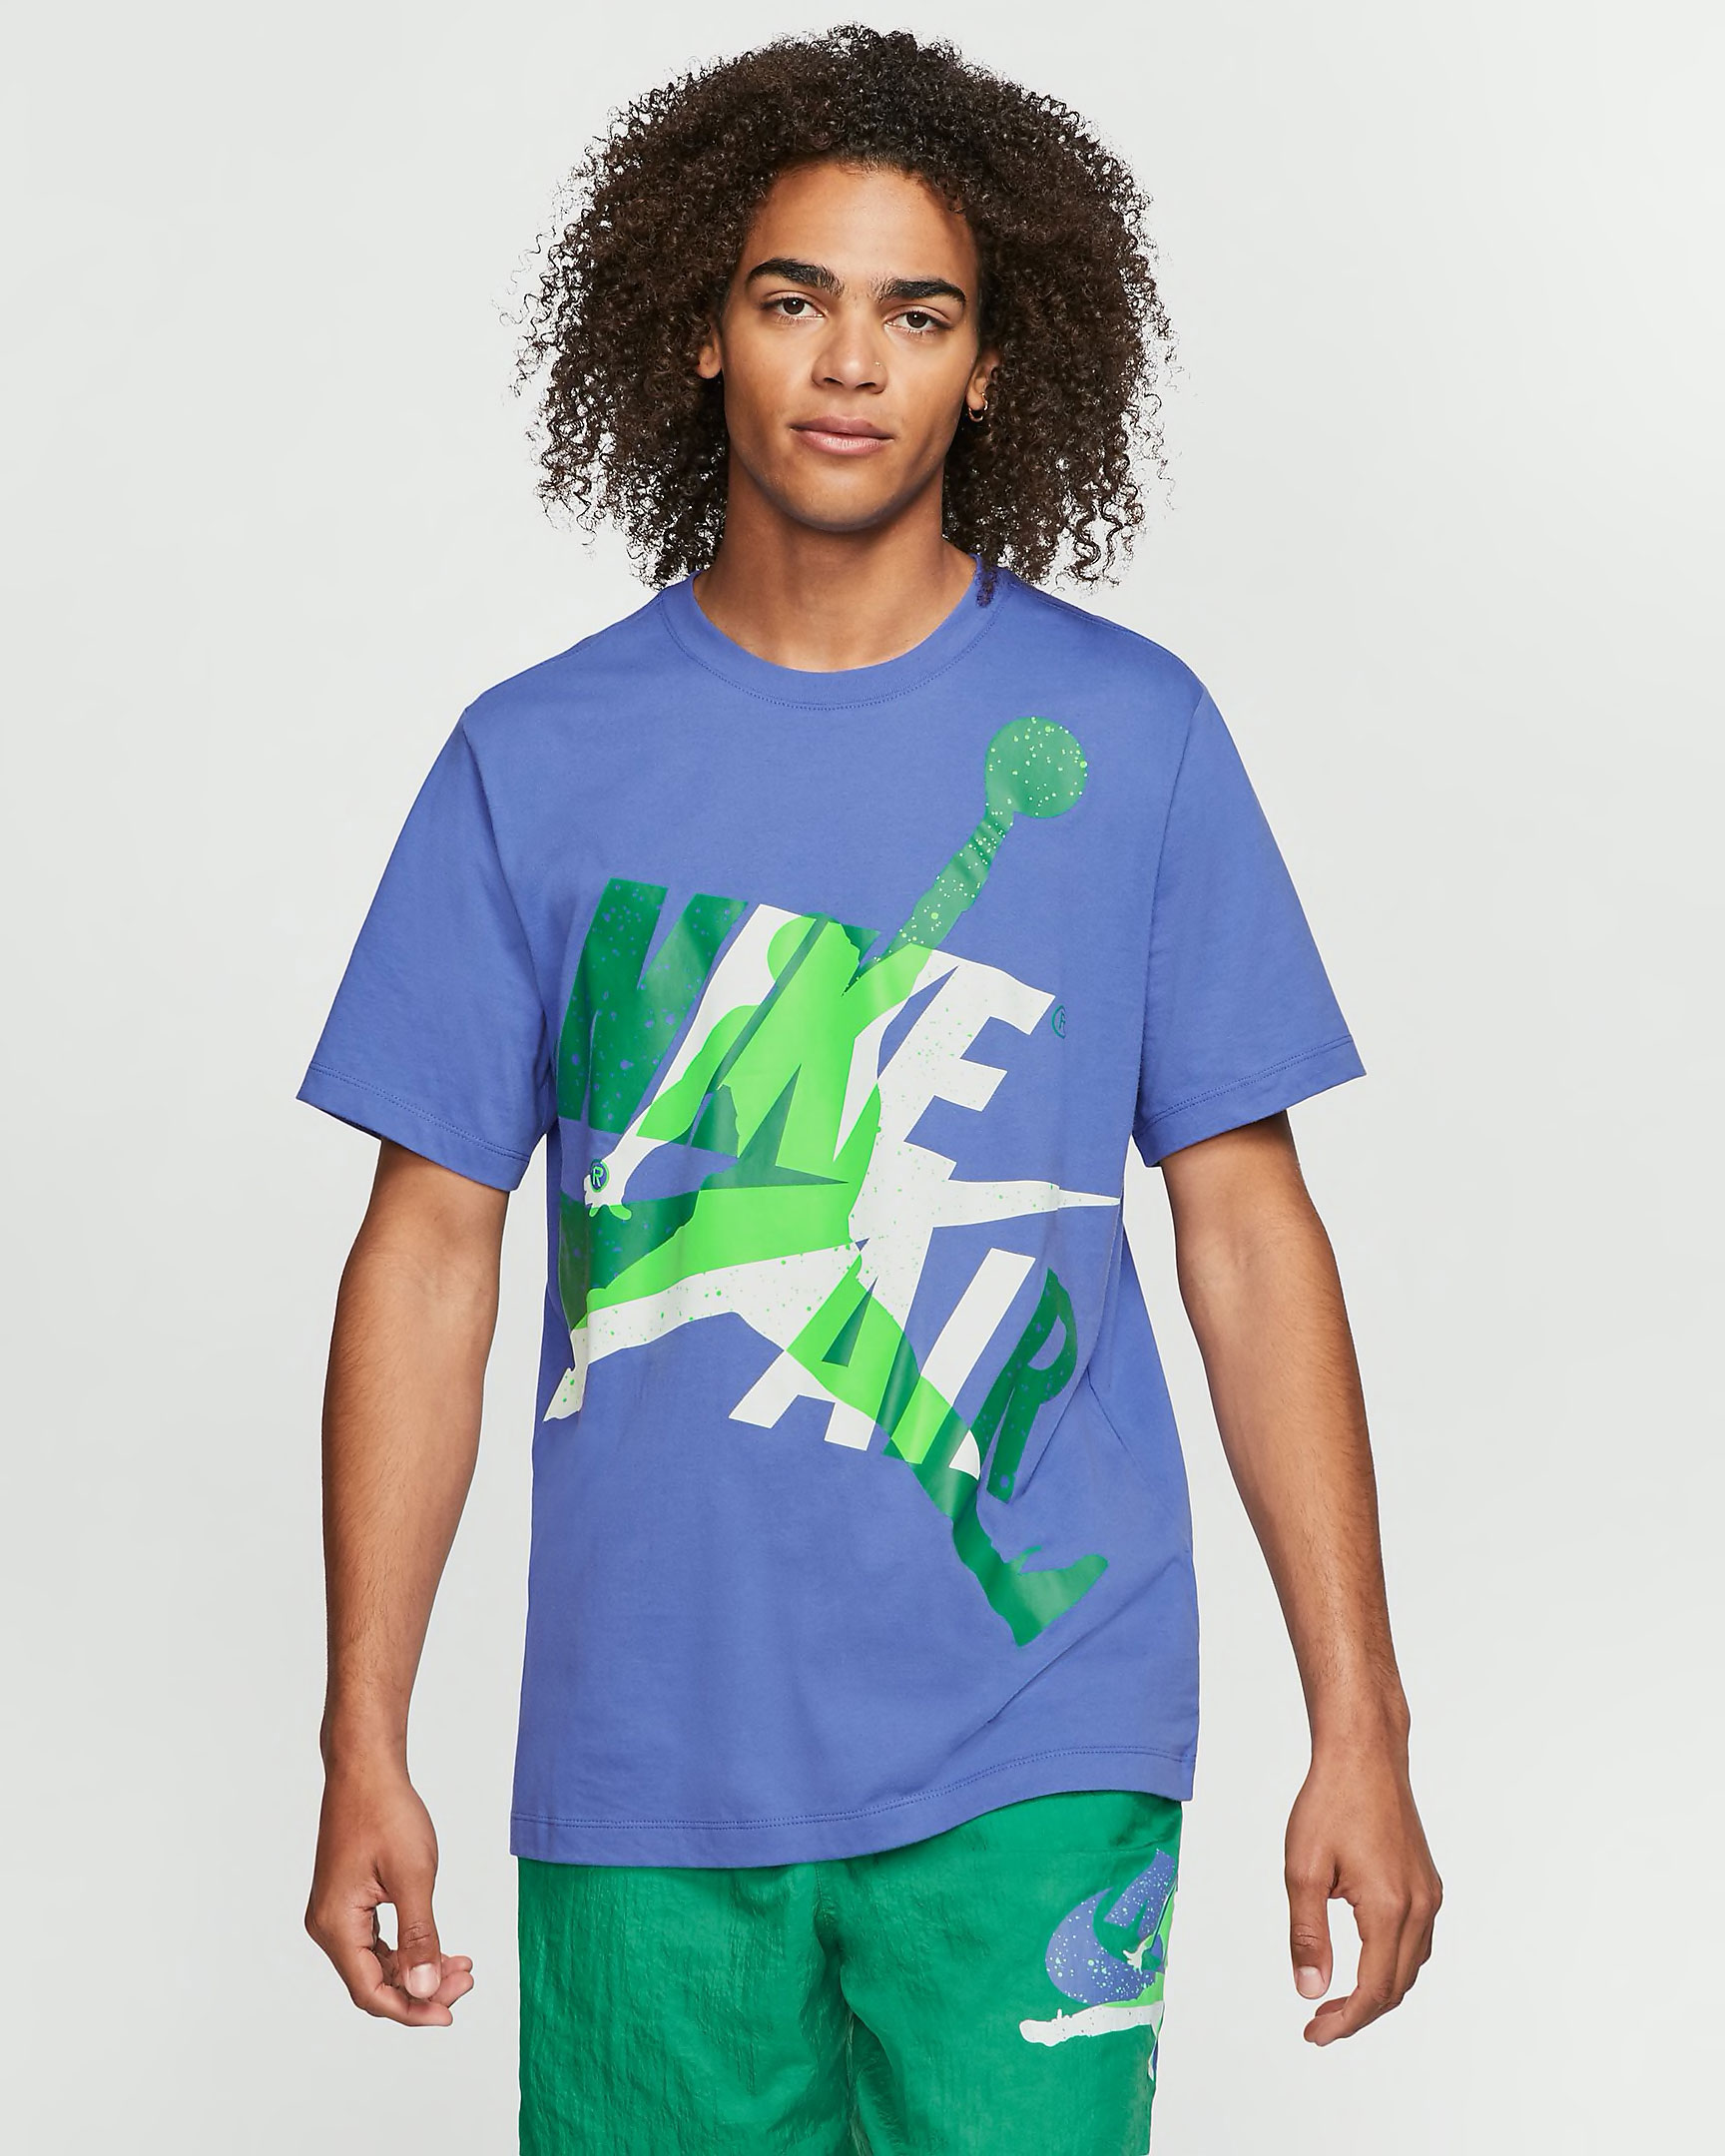 air-jordan-1-mid-nike-hoops-shirt-match-4